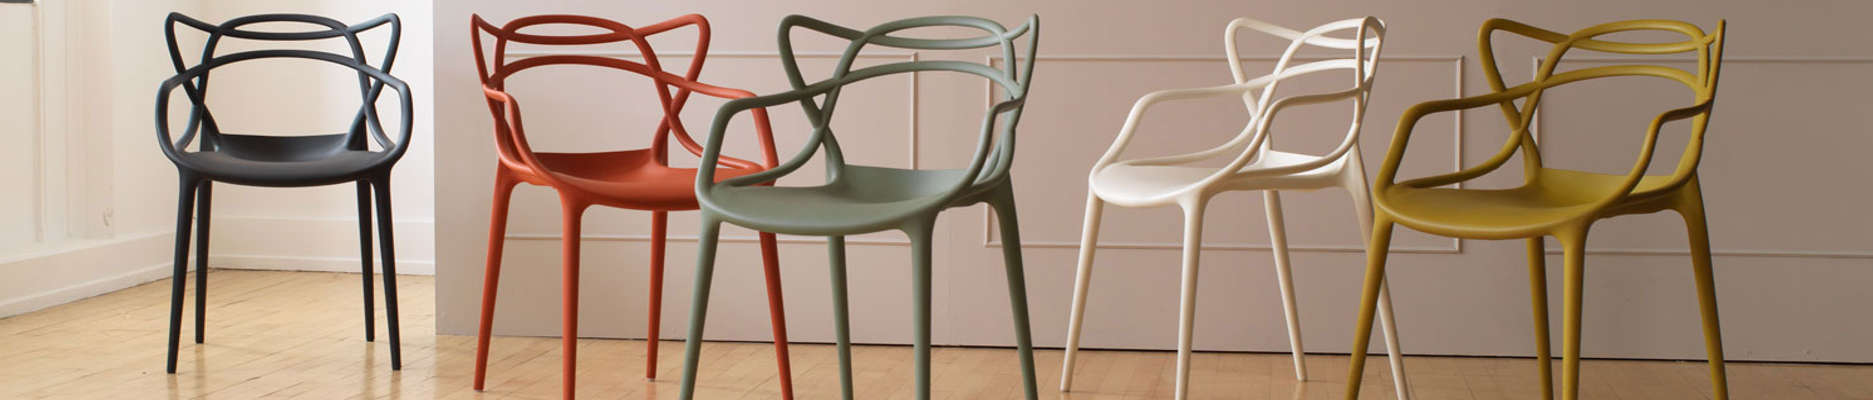 Awesome Sedie Kartell Outlet Images - Design and Ideas ...